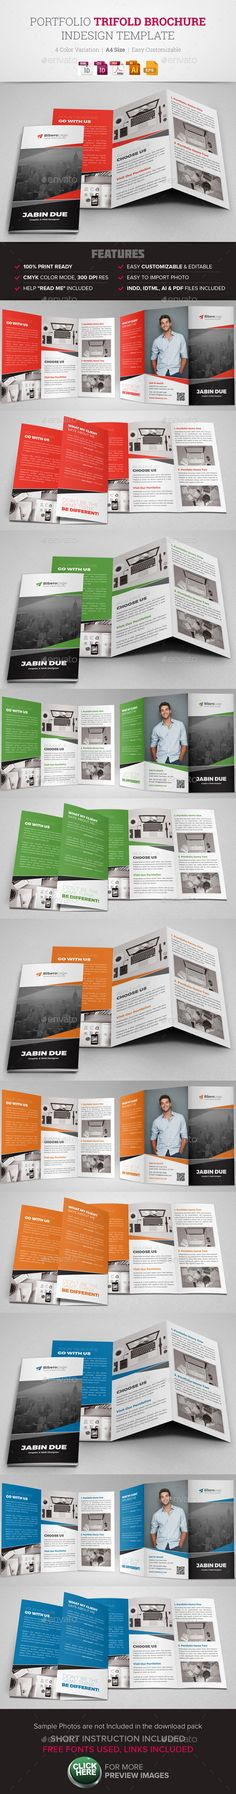 Portfolio Trifold Brochure Indesign Template